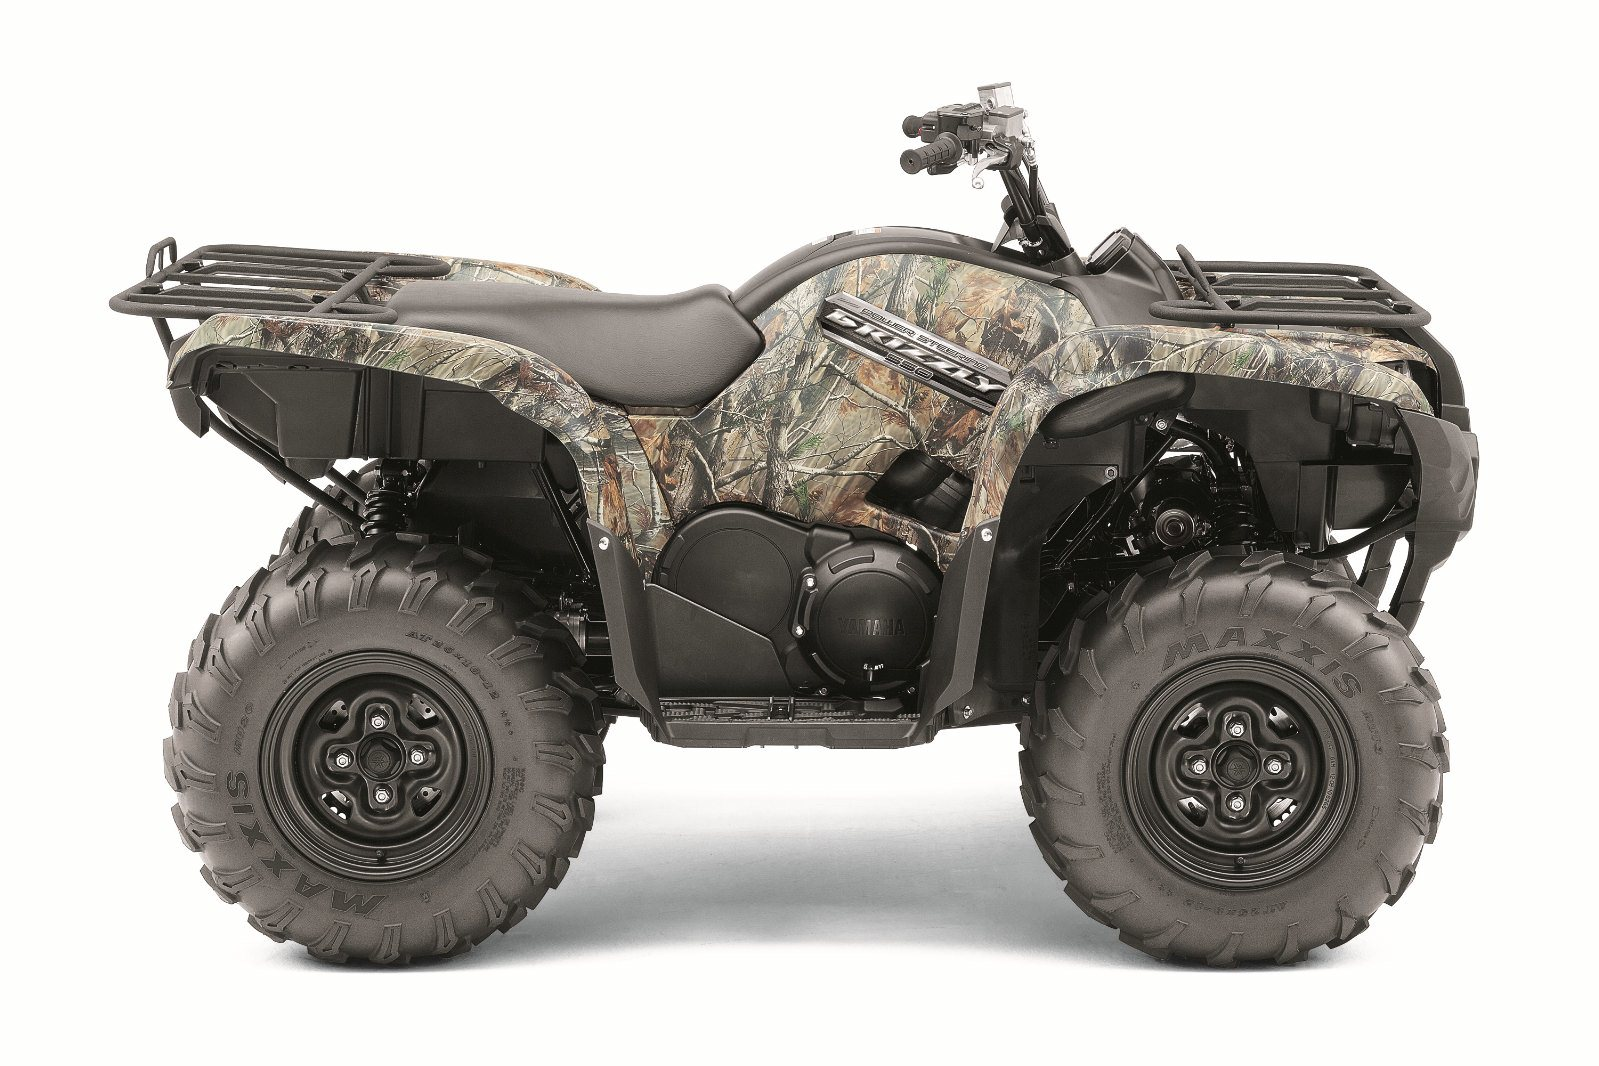 2012 Yamaha Grizzly 550 FI Auto 4x4 EPS | Top Speed